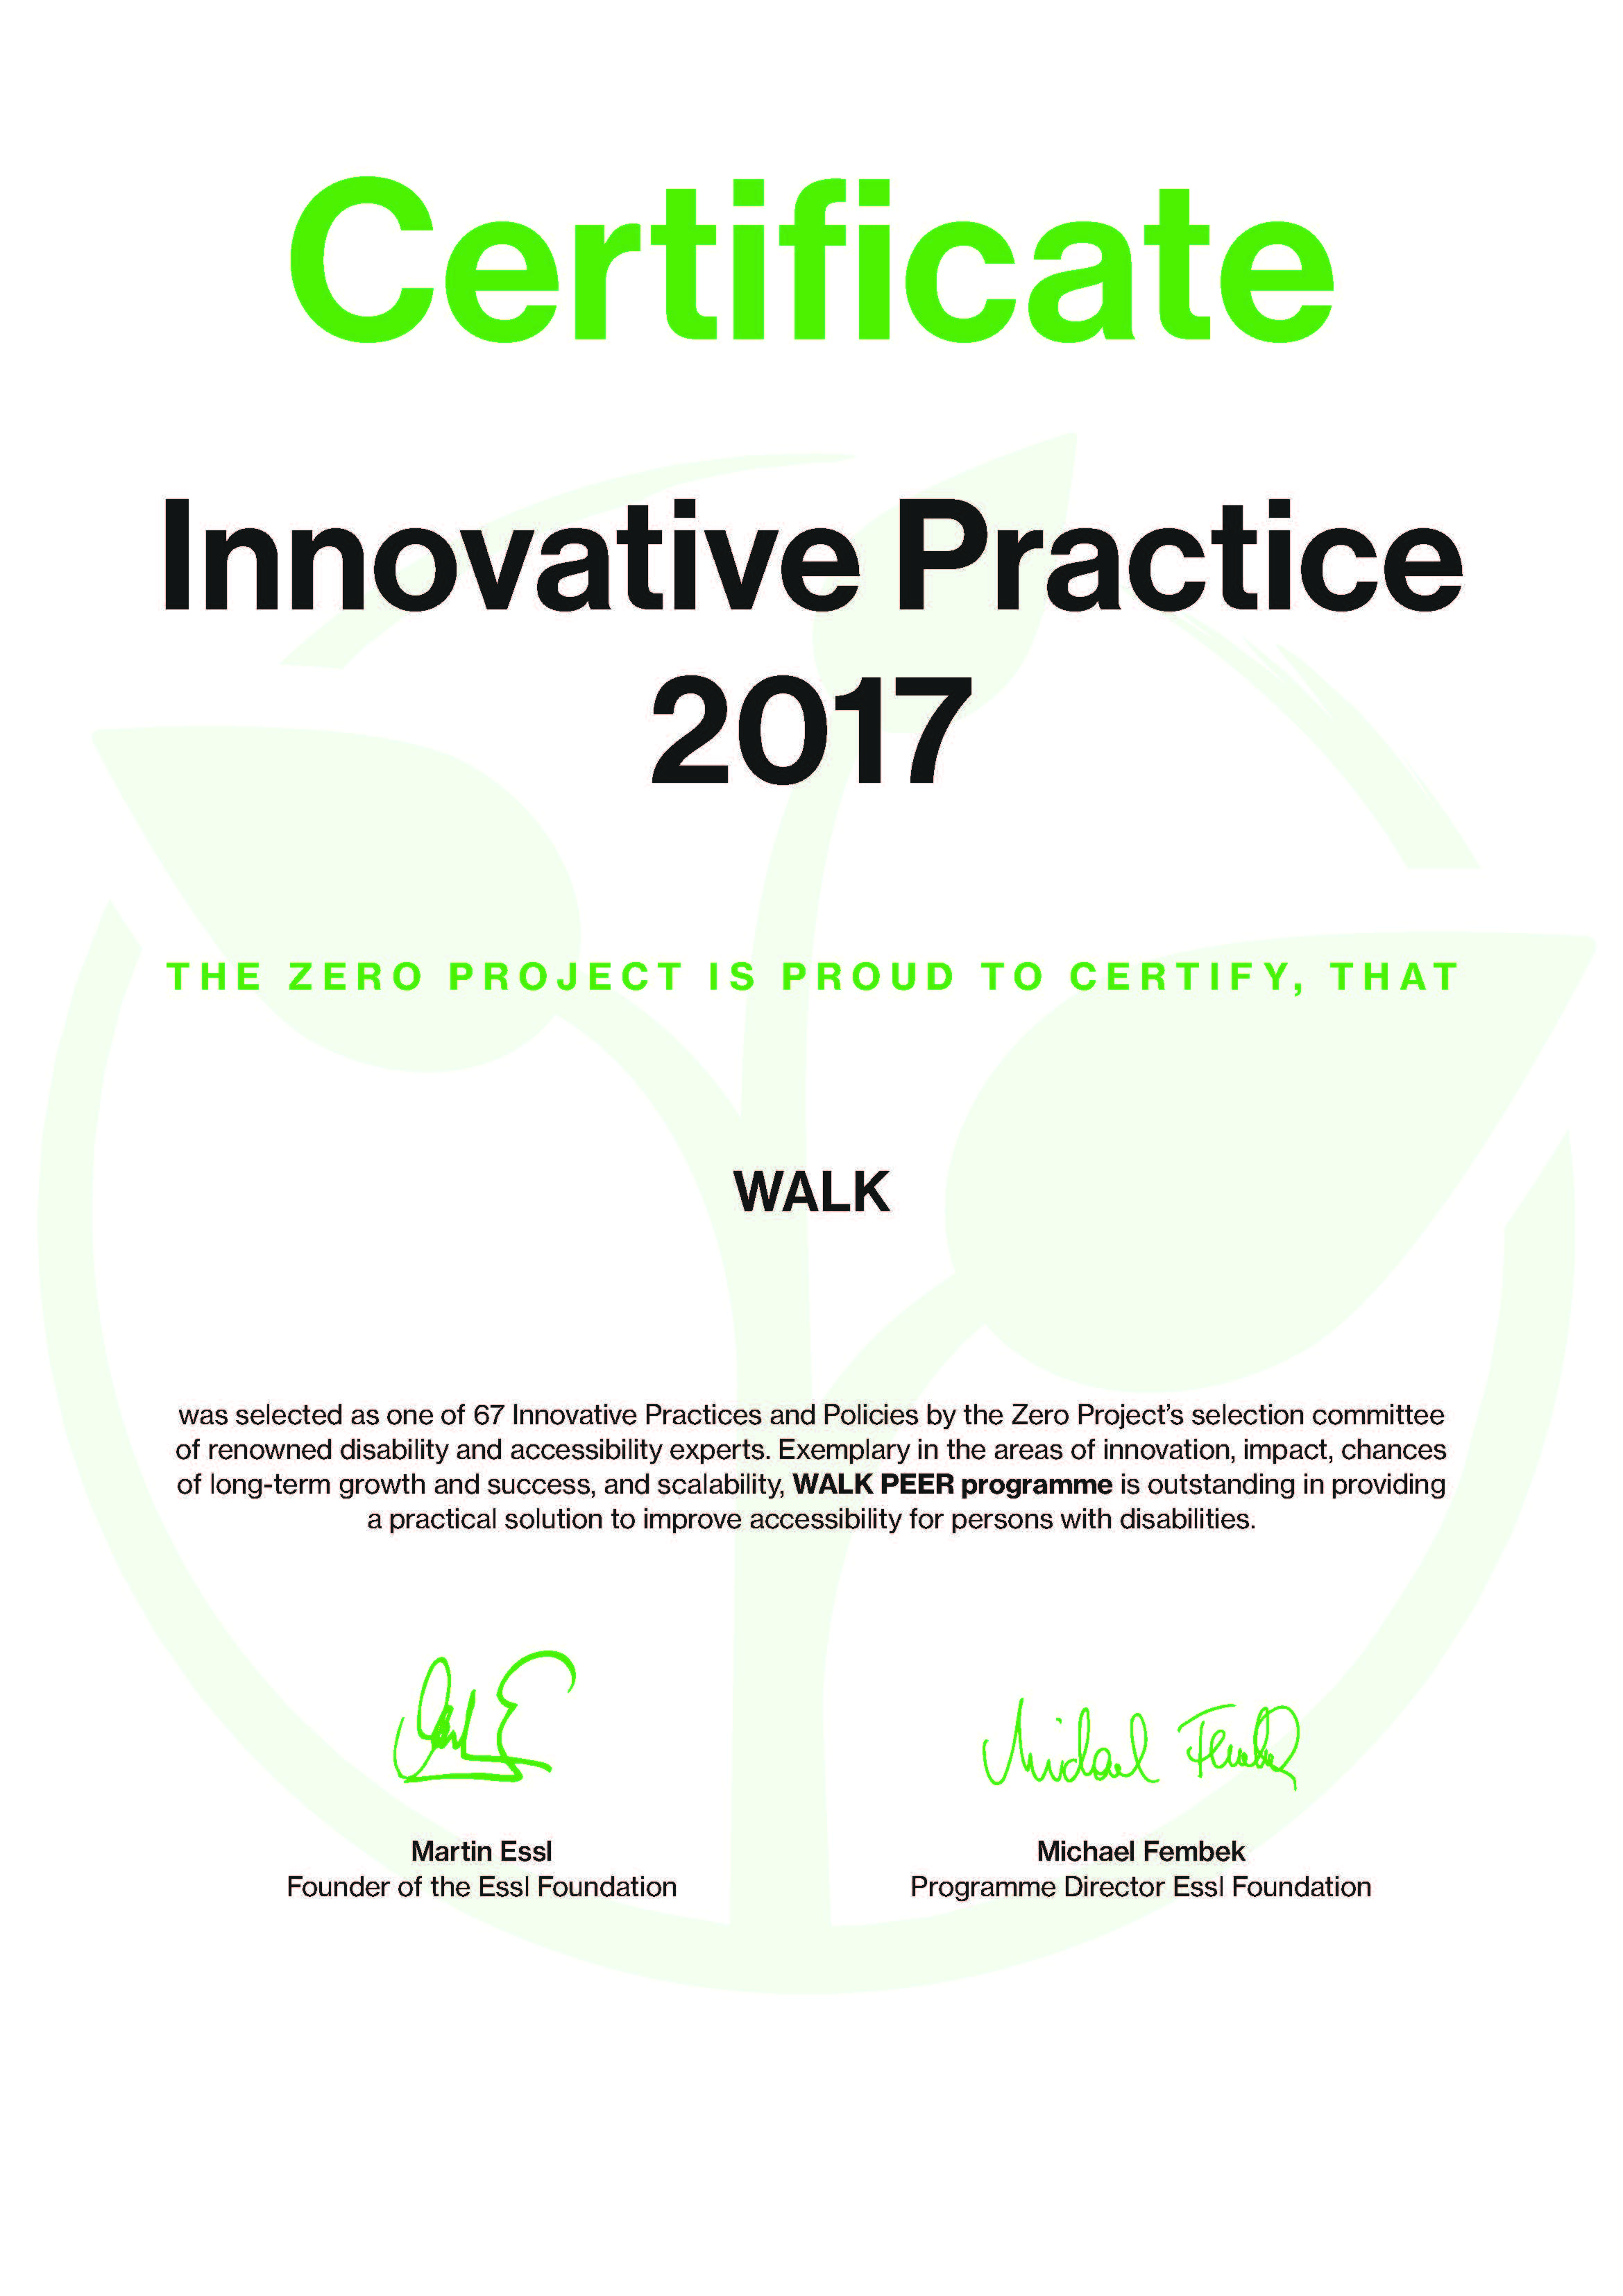 News from the Zero Project